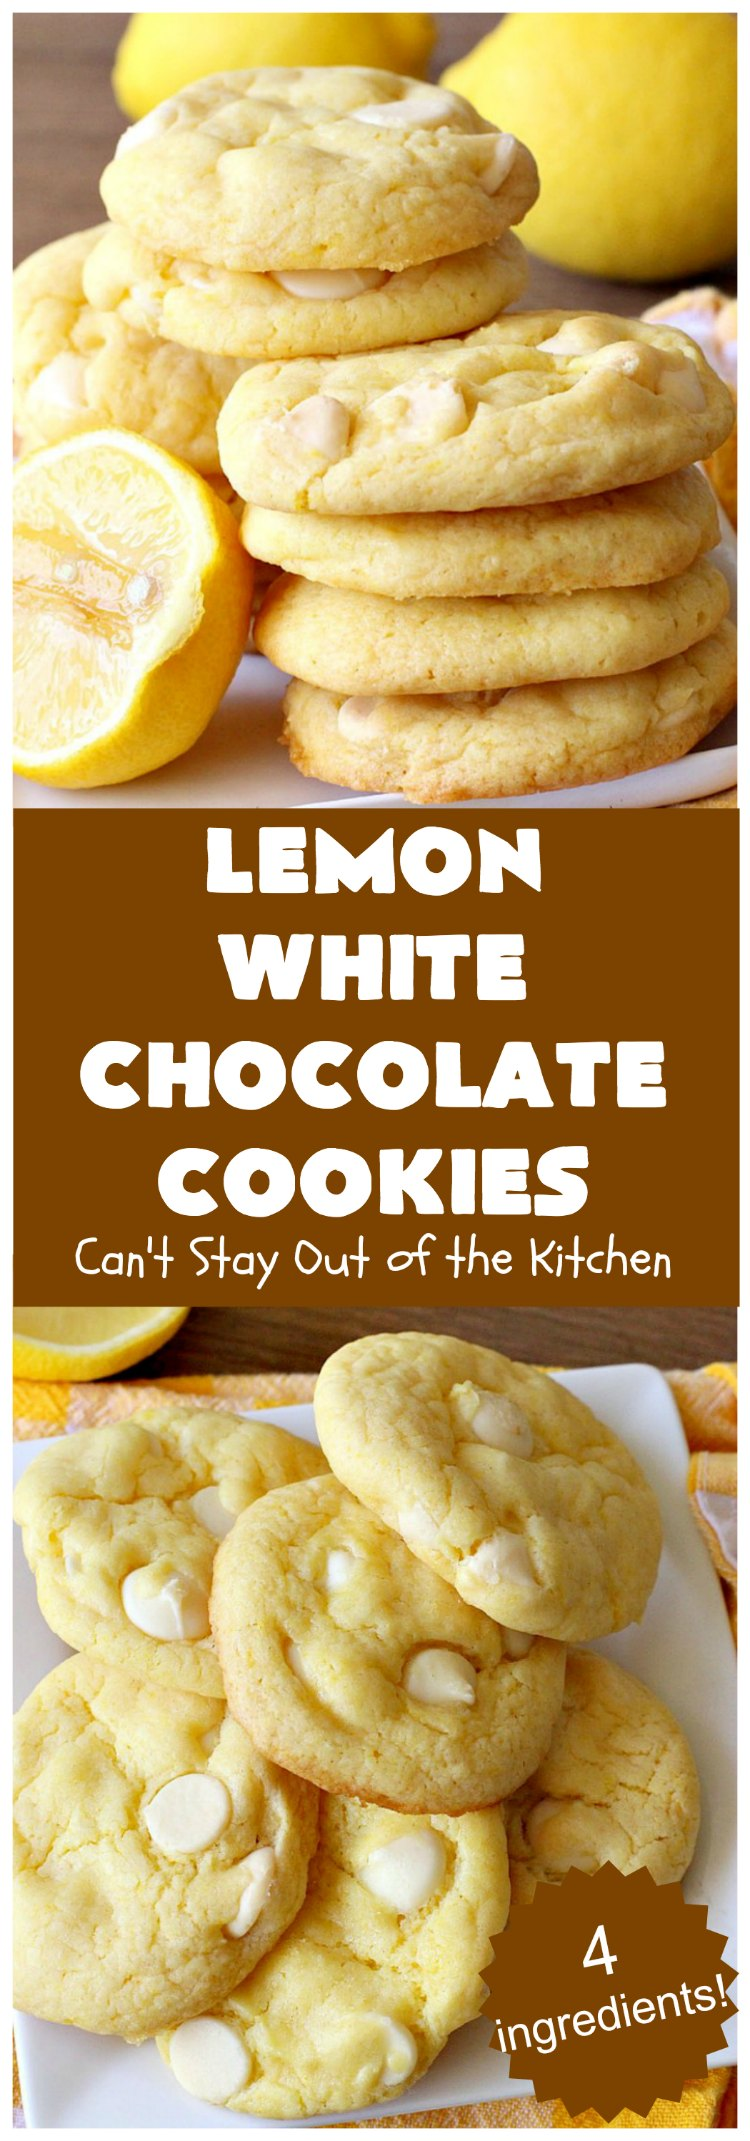 Lemon White Chocolate Cookies   Can't Stay Out of the Kitchen